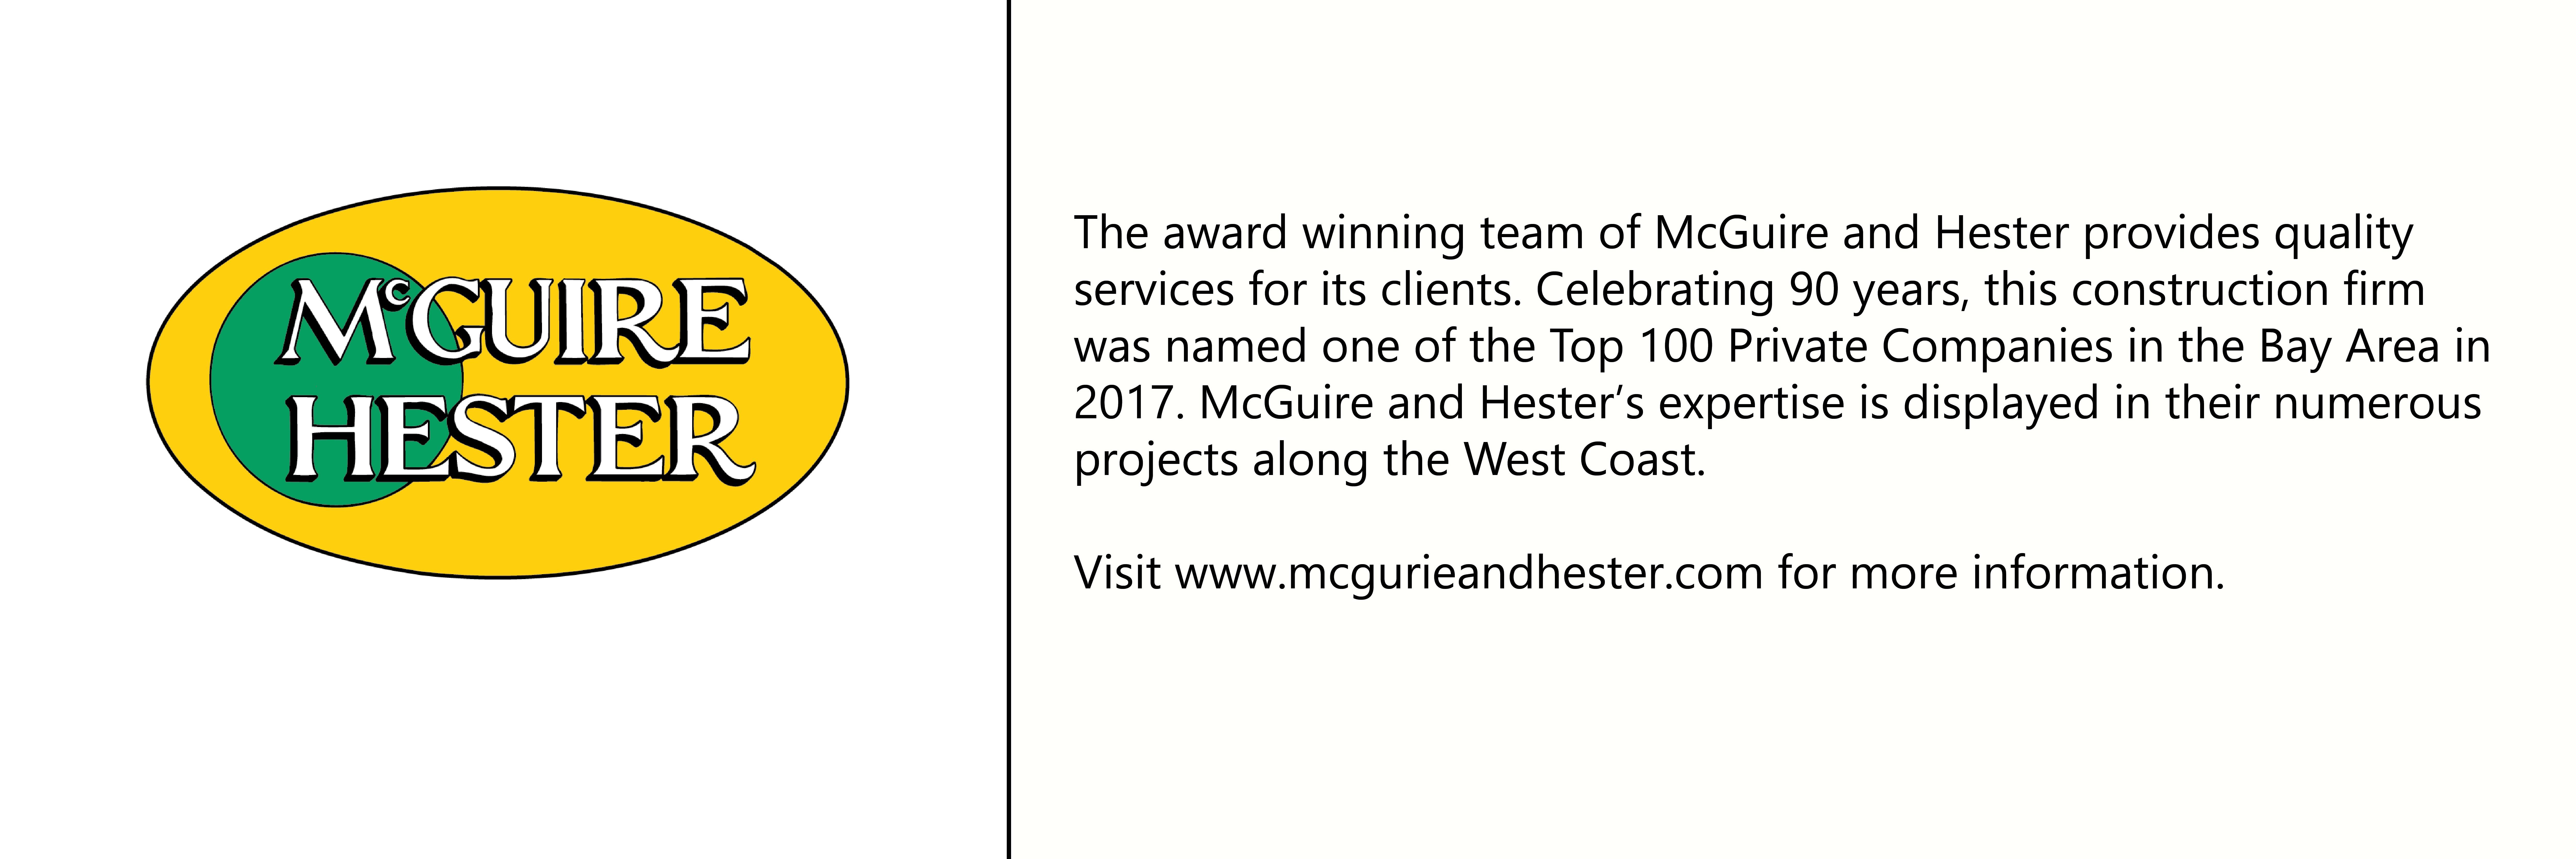 McGuire and Hester logo with description of company